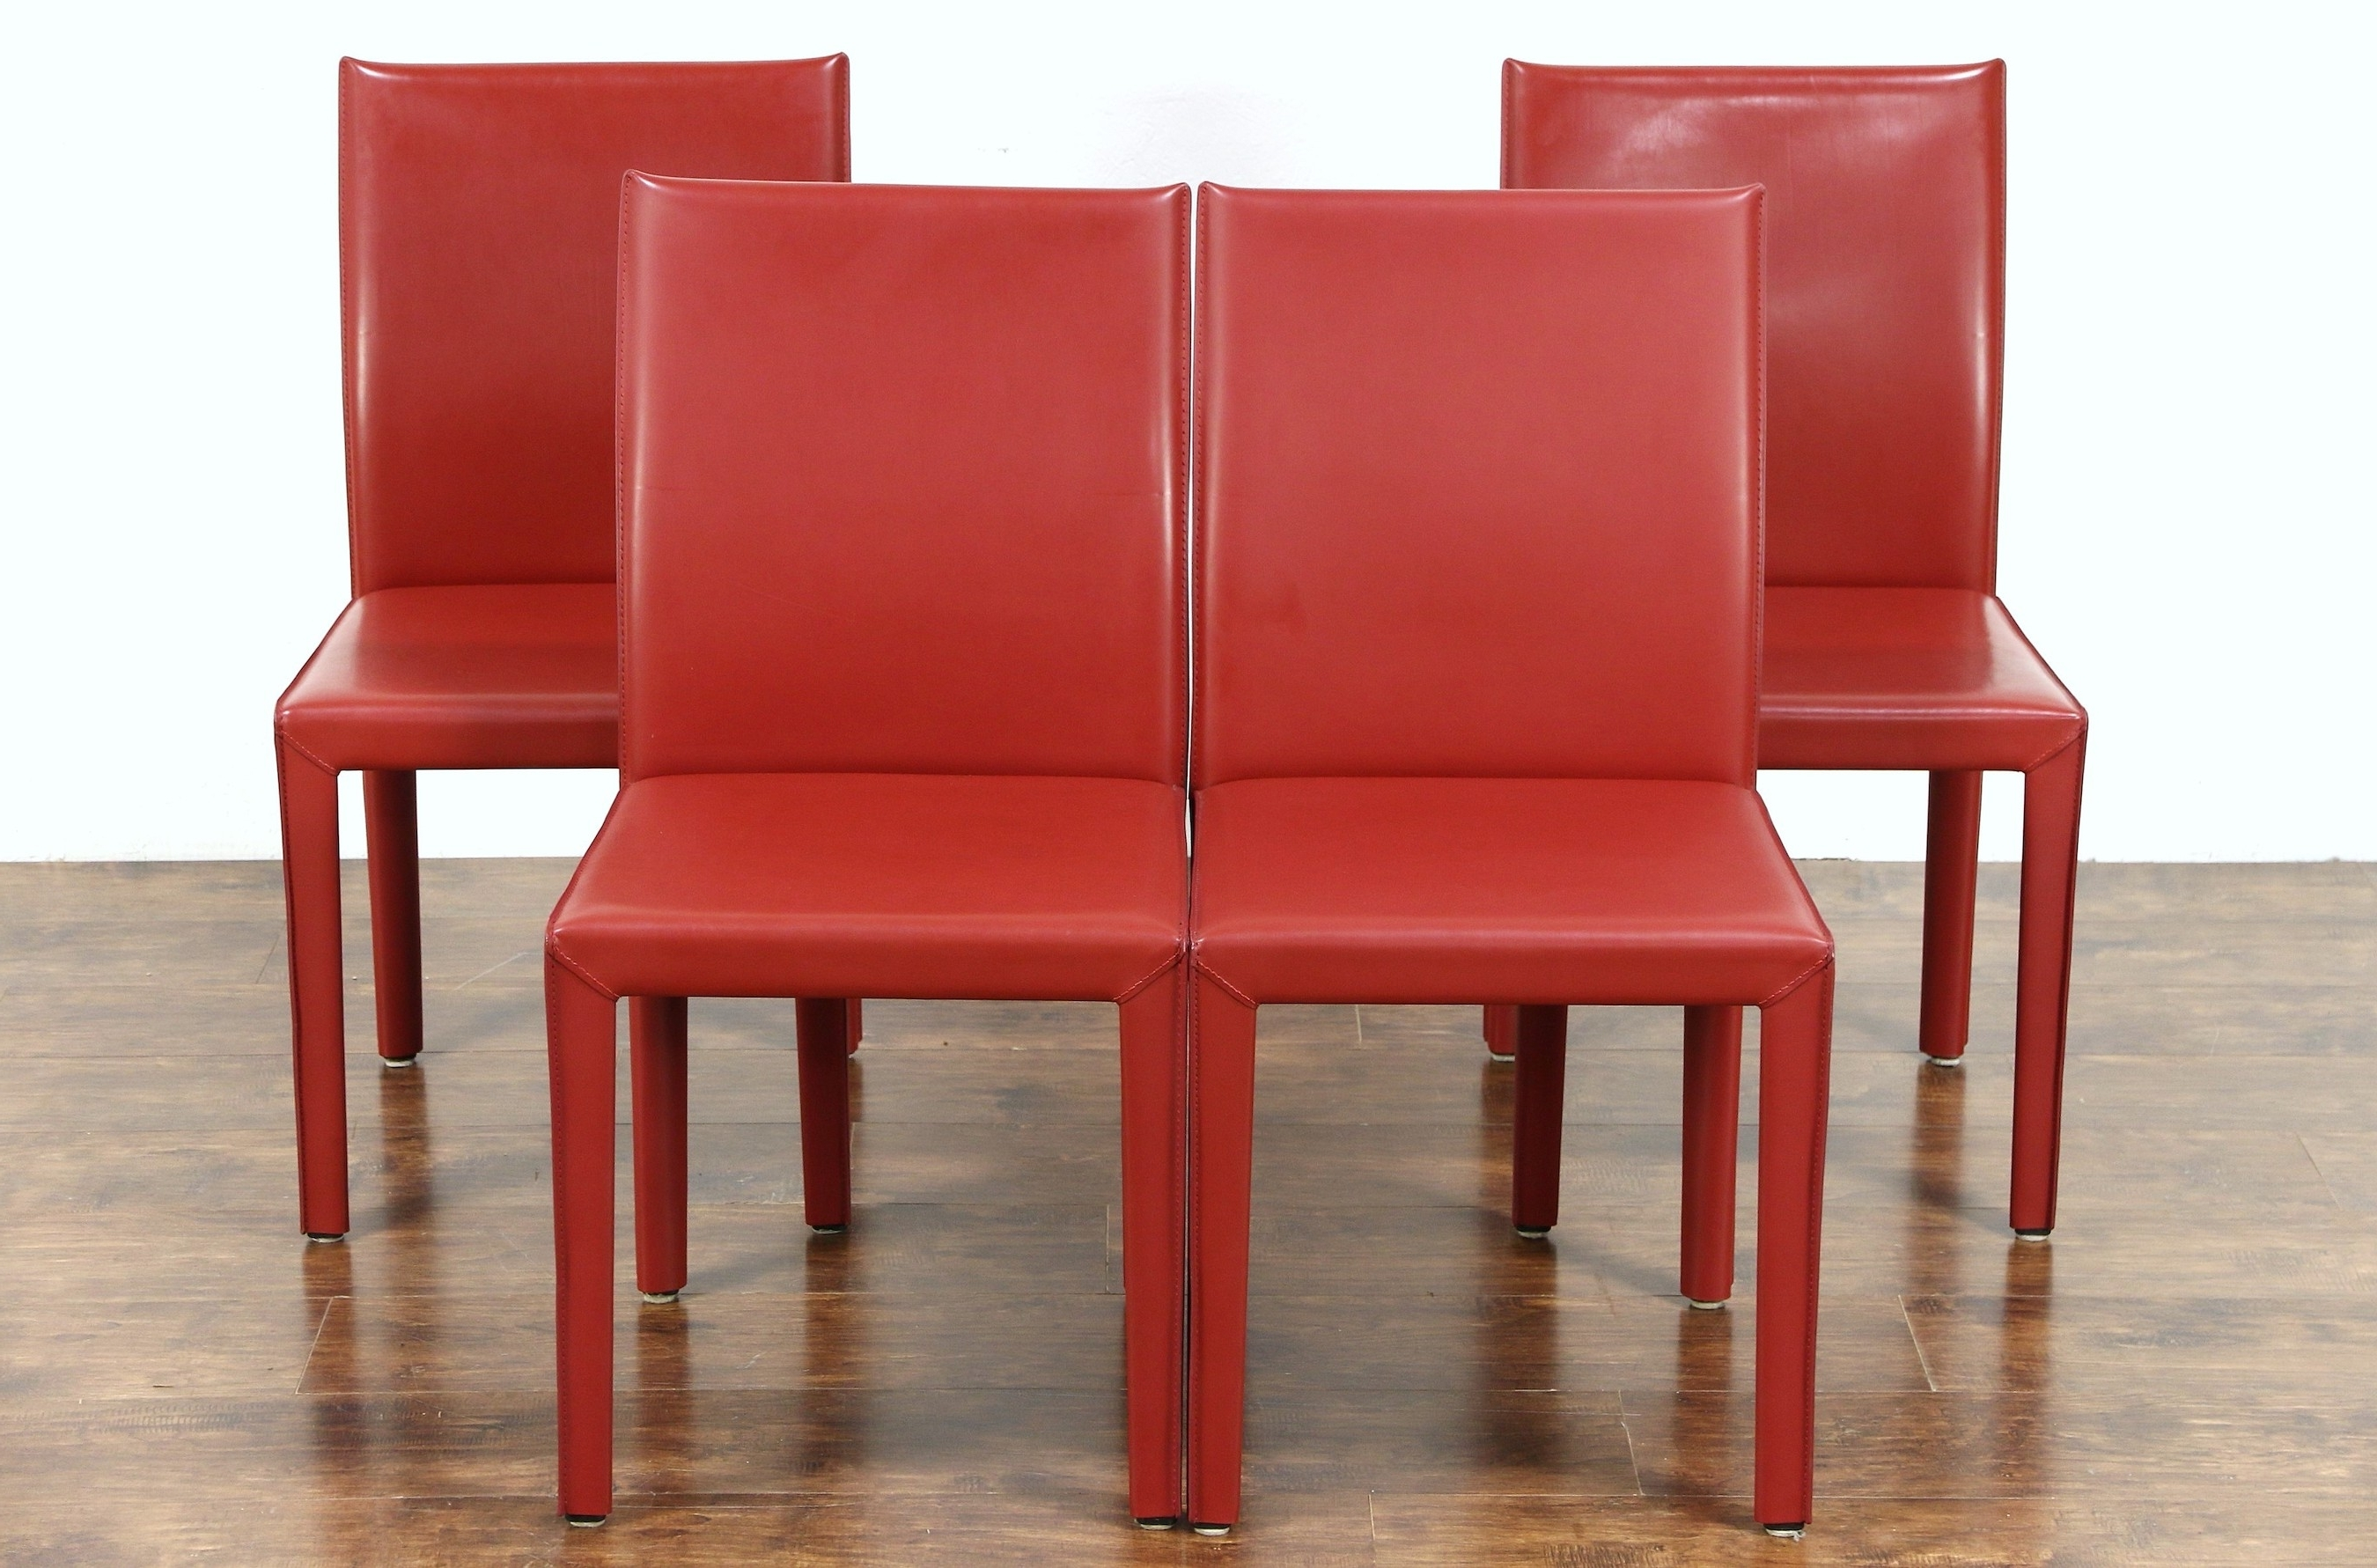 Newest Sold – Set Of 4 Red Leather Dining Or Game Table Chairs, Signed Regarding Red Leather Dining Chairs (View 5 of 25)